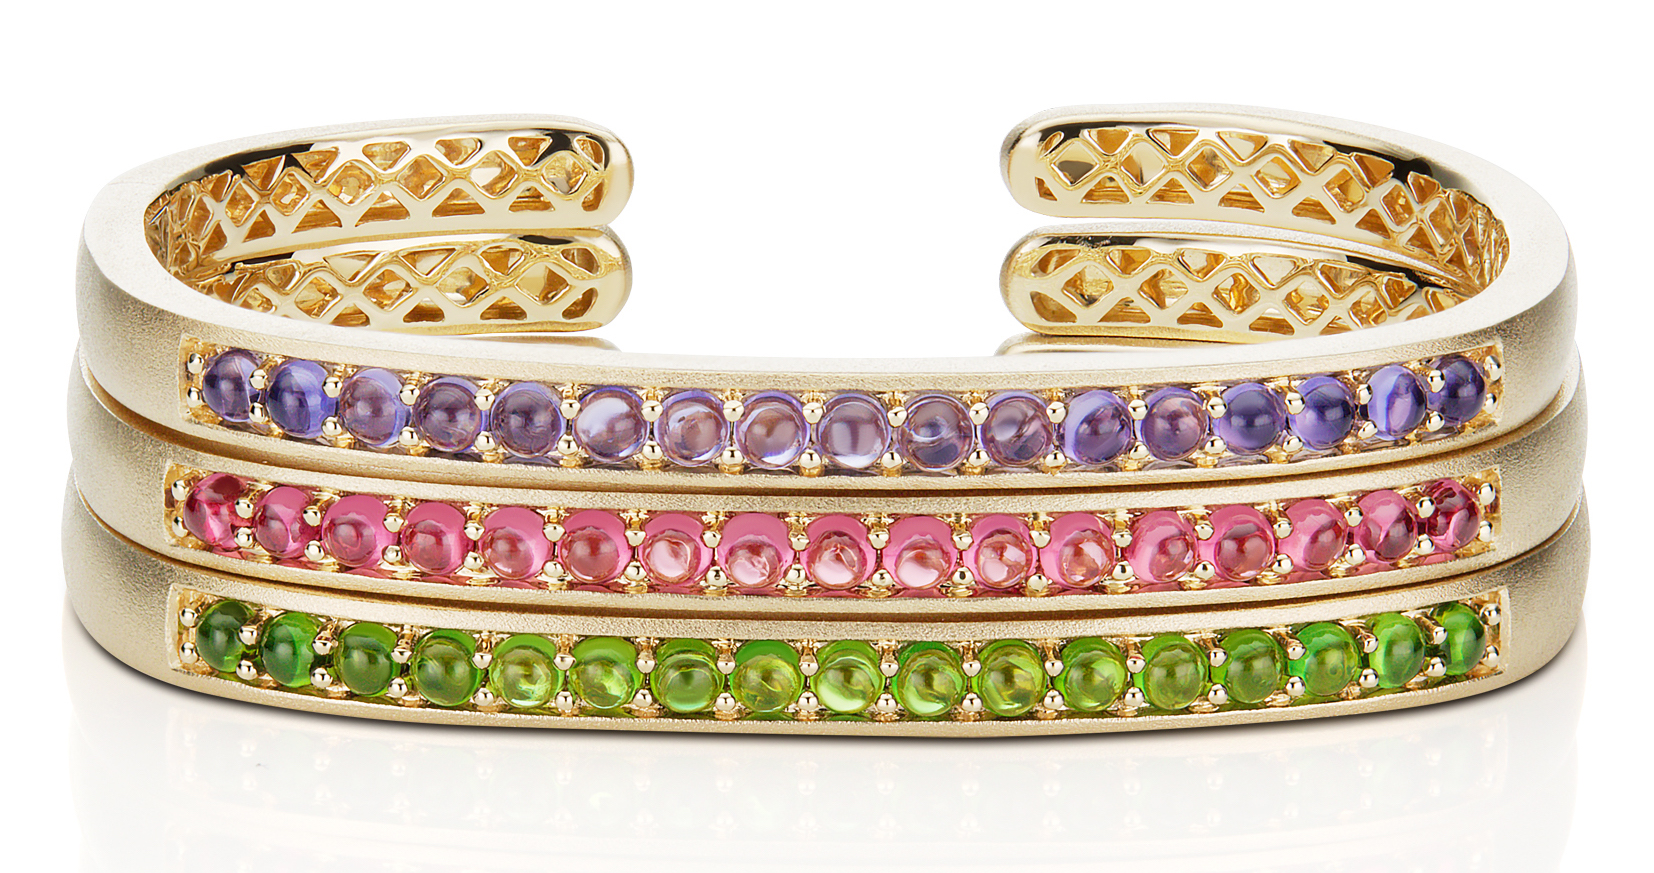 Jane Taylor Cirque cabochon bracelets | JCK On Your Market